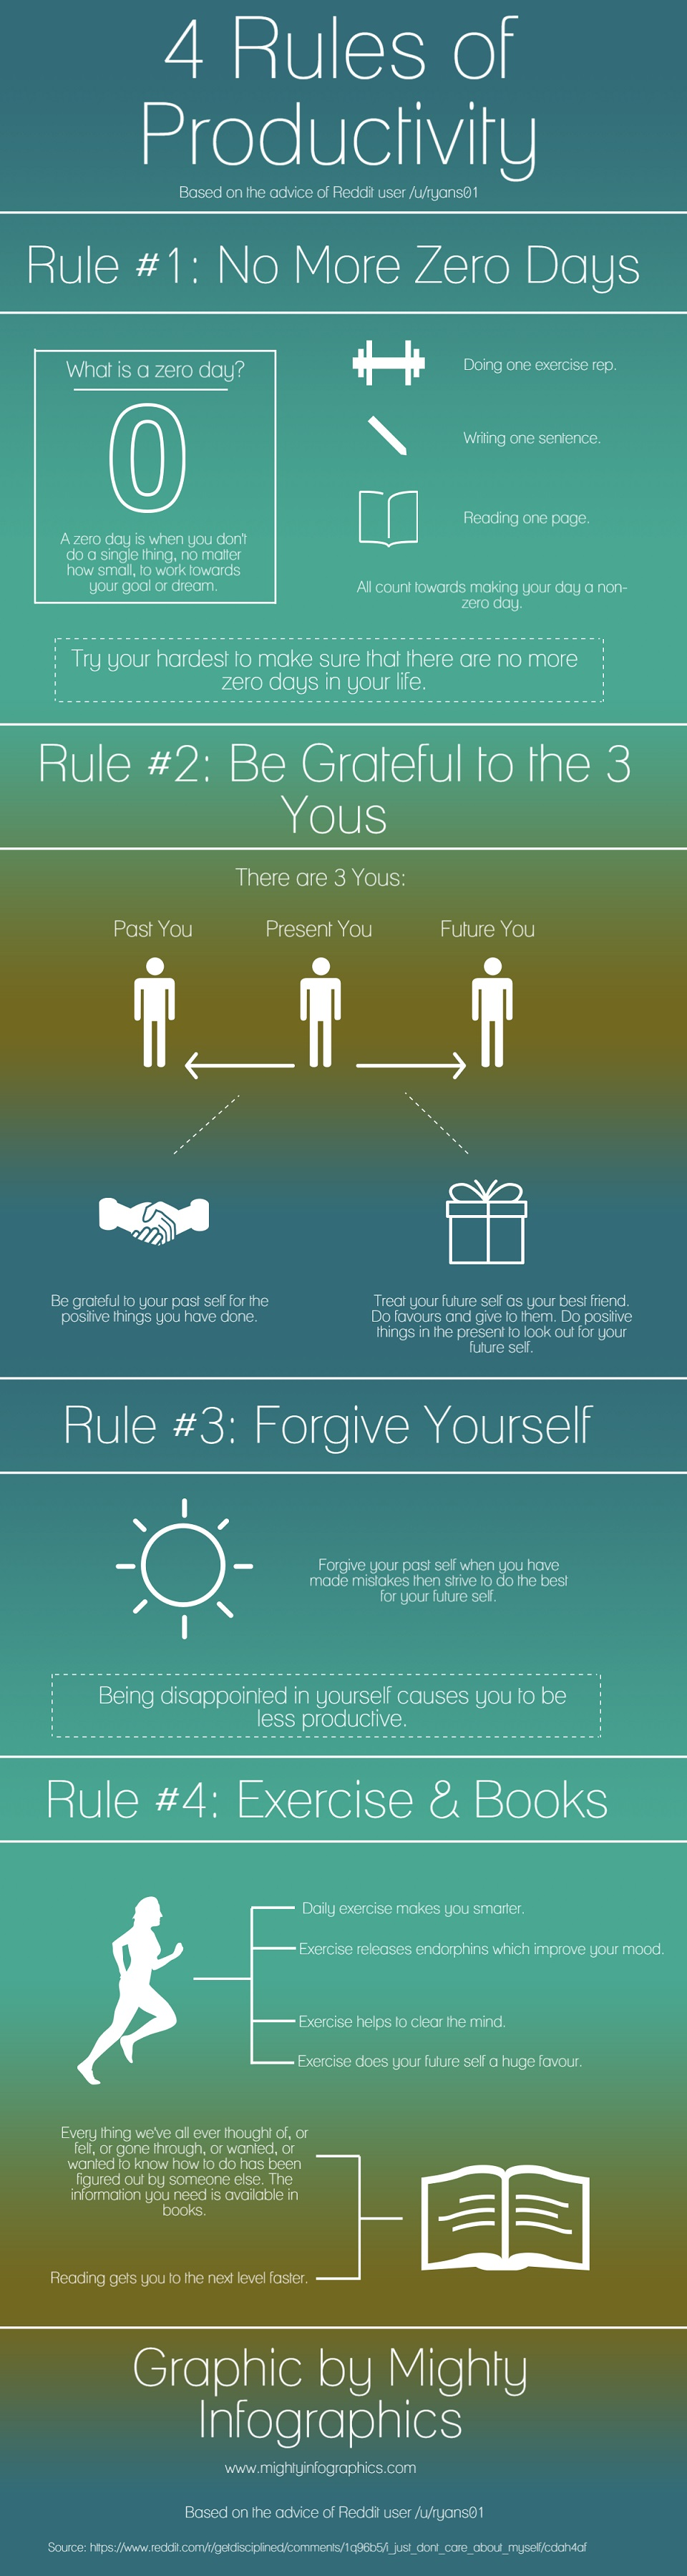 4-rules-of-productivity-infographic-plaza